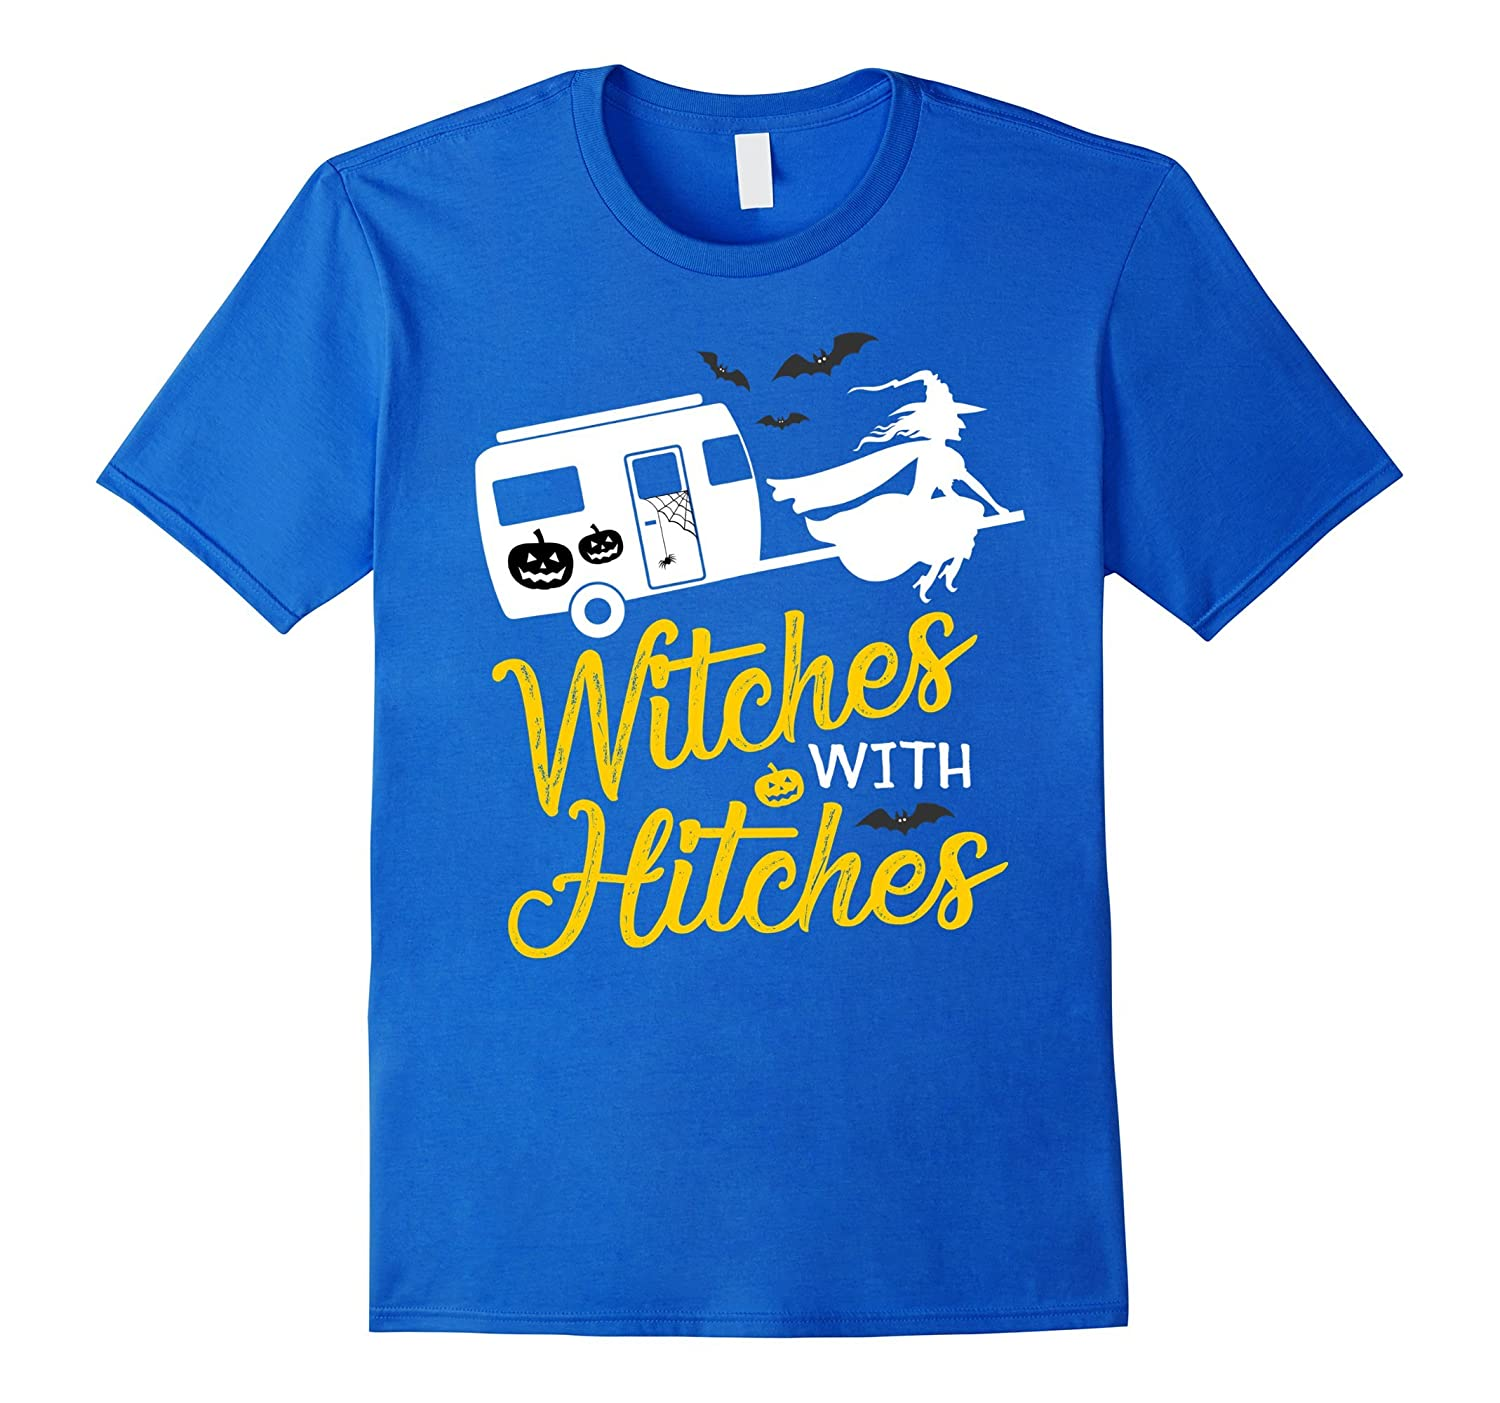 f8b93208 Witches With Hitches T-shirt Witch Riding Camping Car-FL ...